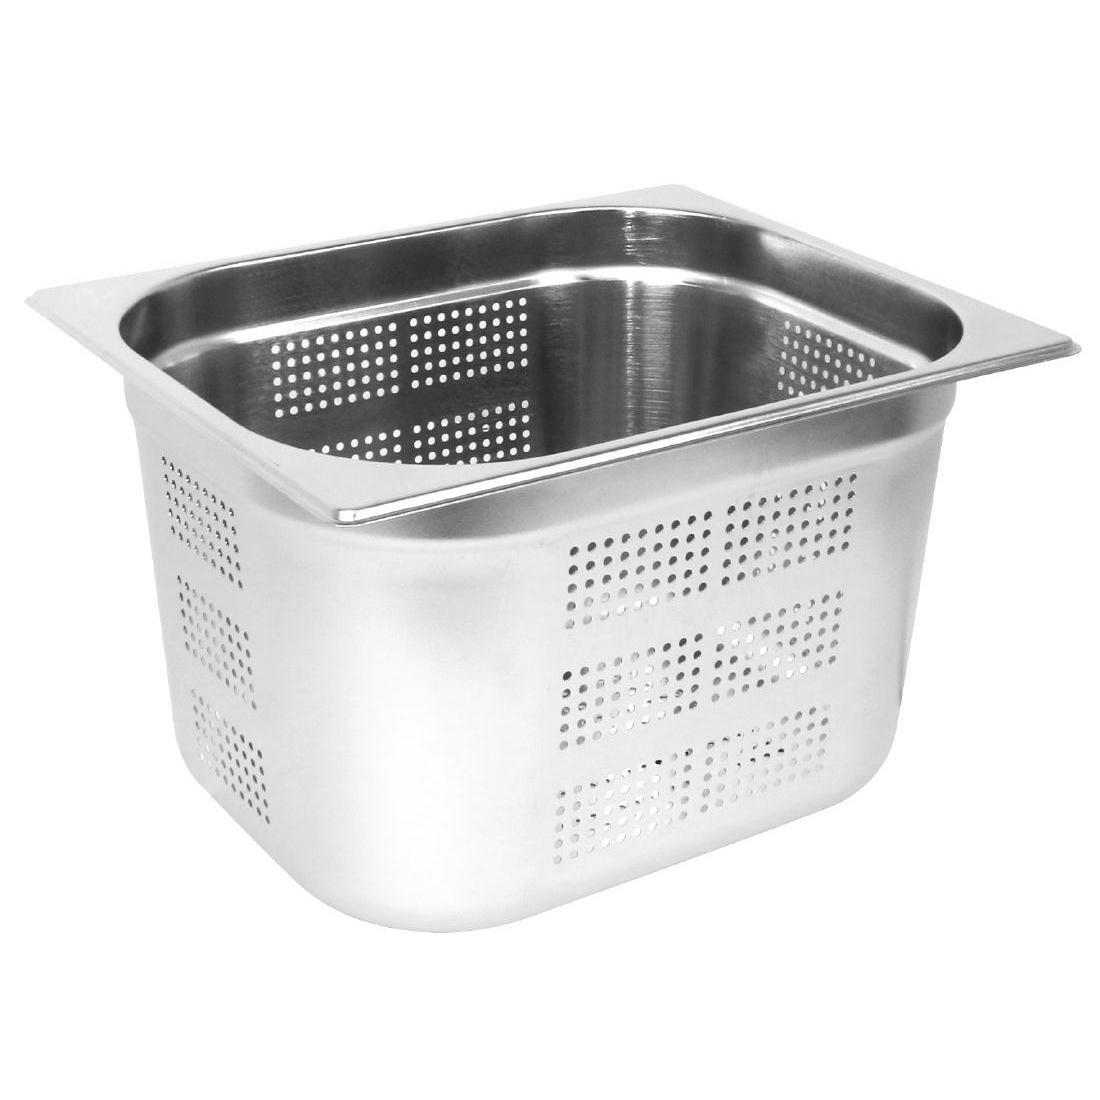 Vogue Stainless Steel Perforated 1/2 Gastronorm Pan 200mm - Each - GM319